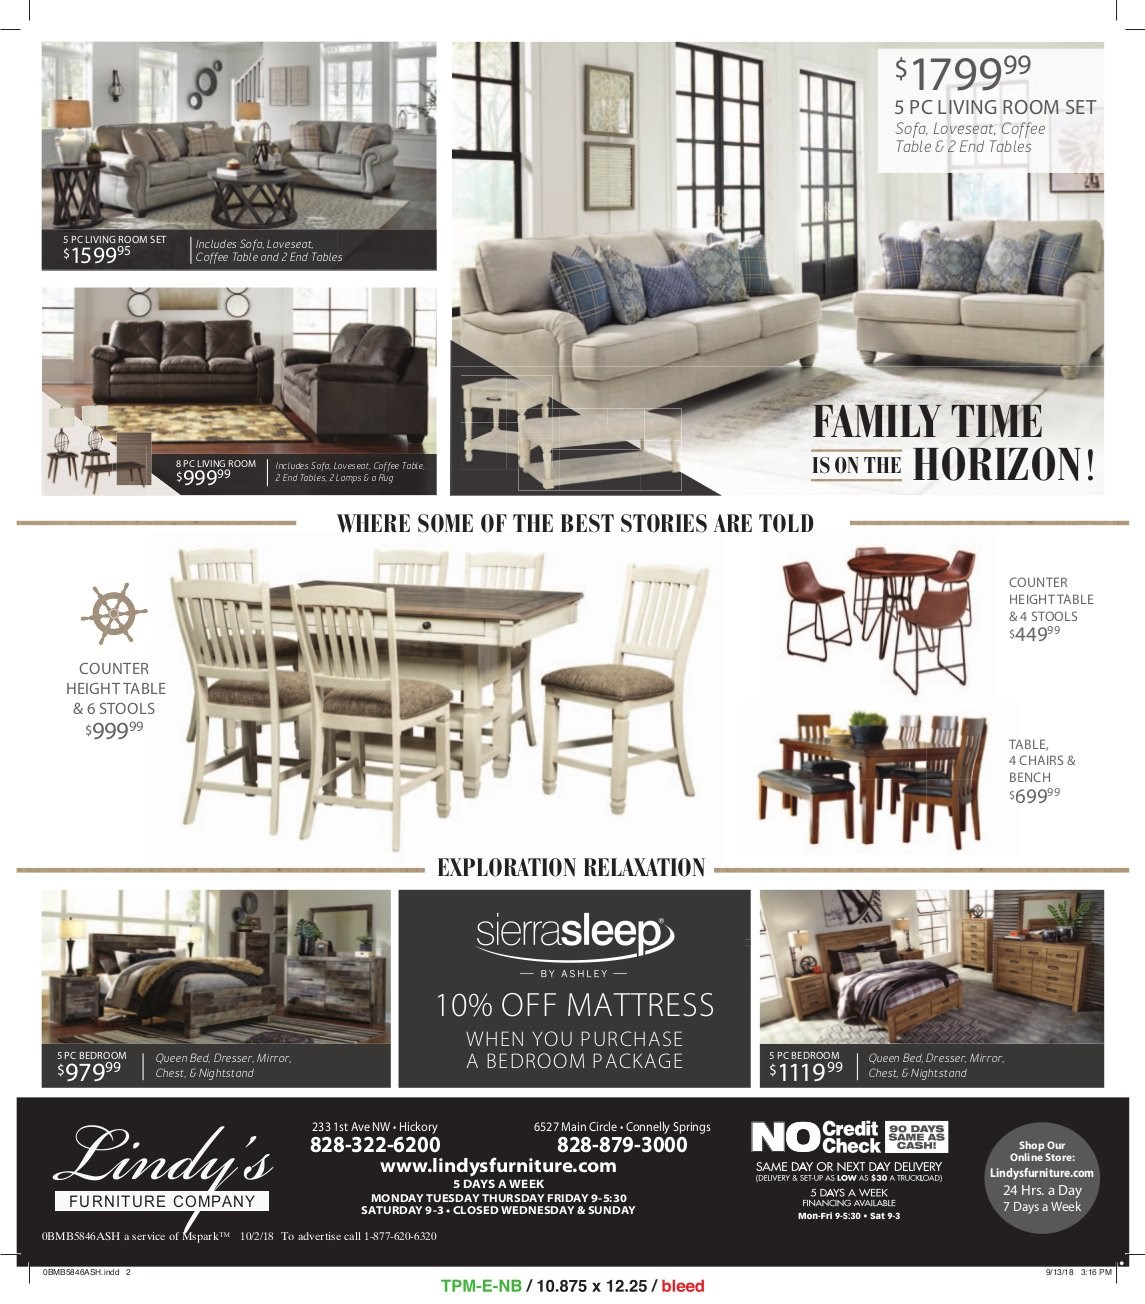 Macys Furniture Outlet Columbus: Hickory, Connelly Springs